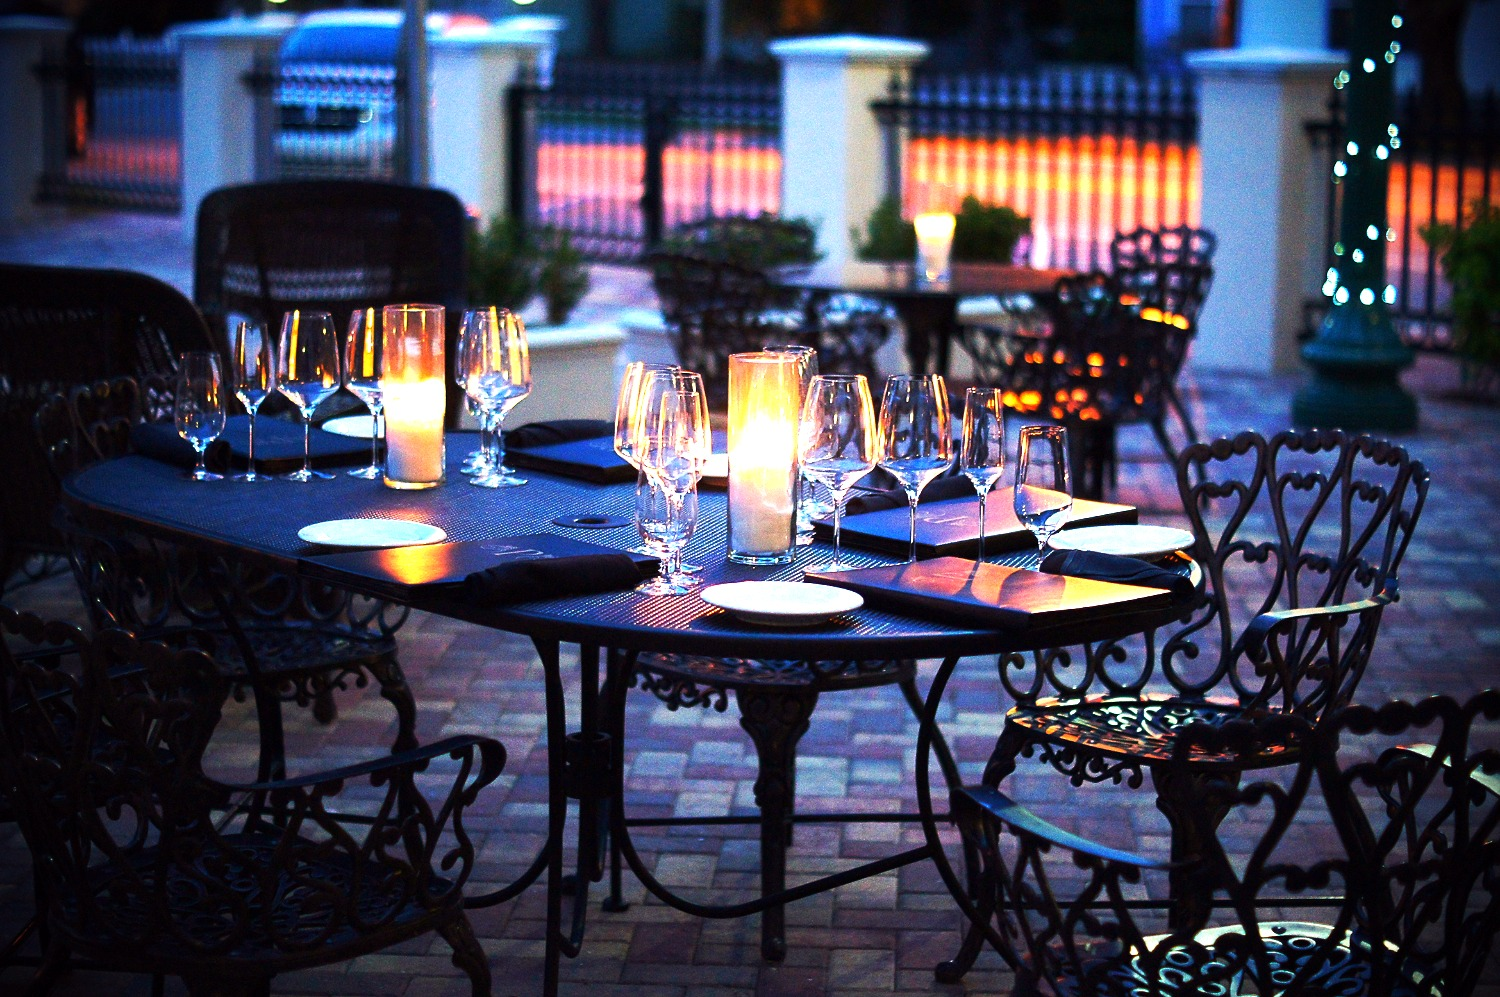 150_Pomona_Bistro_Wine_Bar-high-end-outdoor-dining-iron table-outdoor-fireplac780x450e_edited